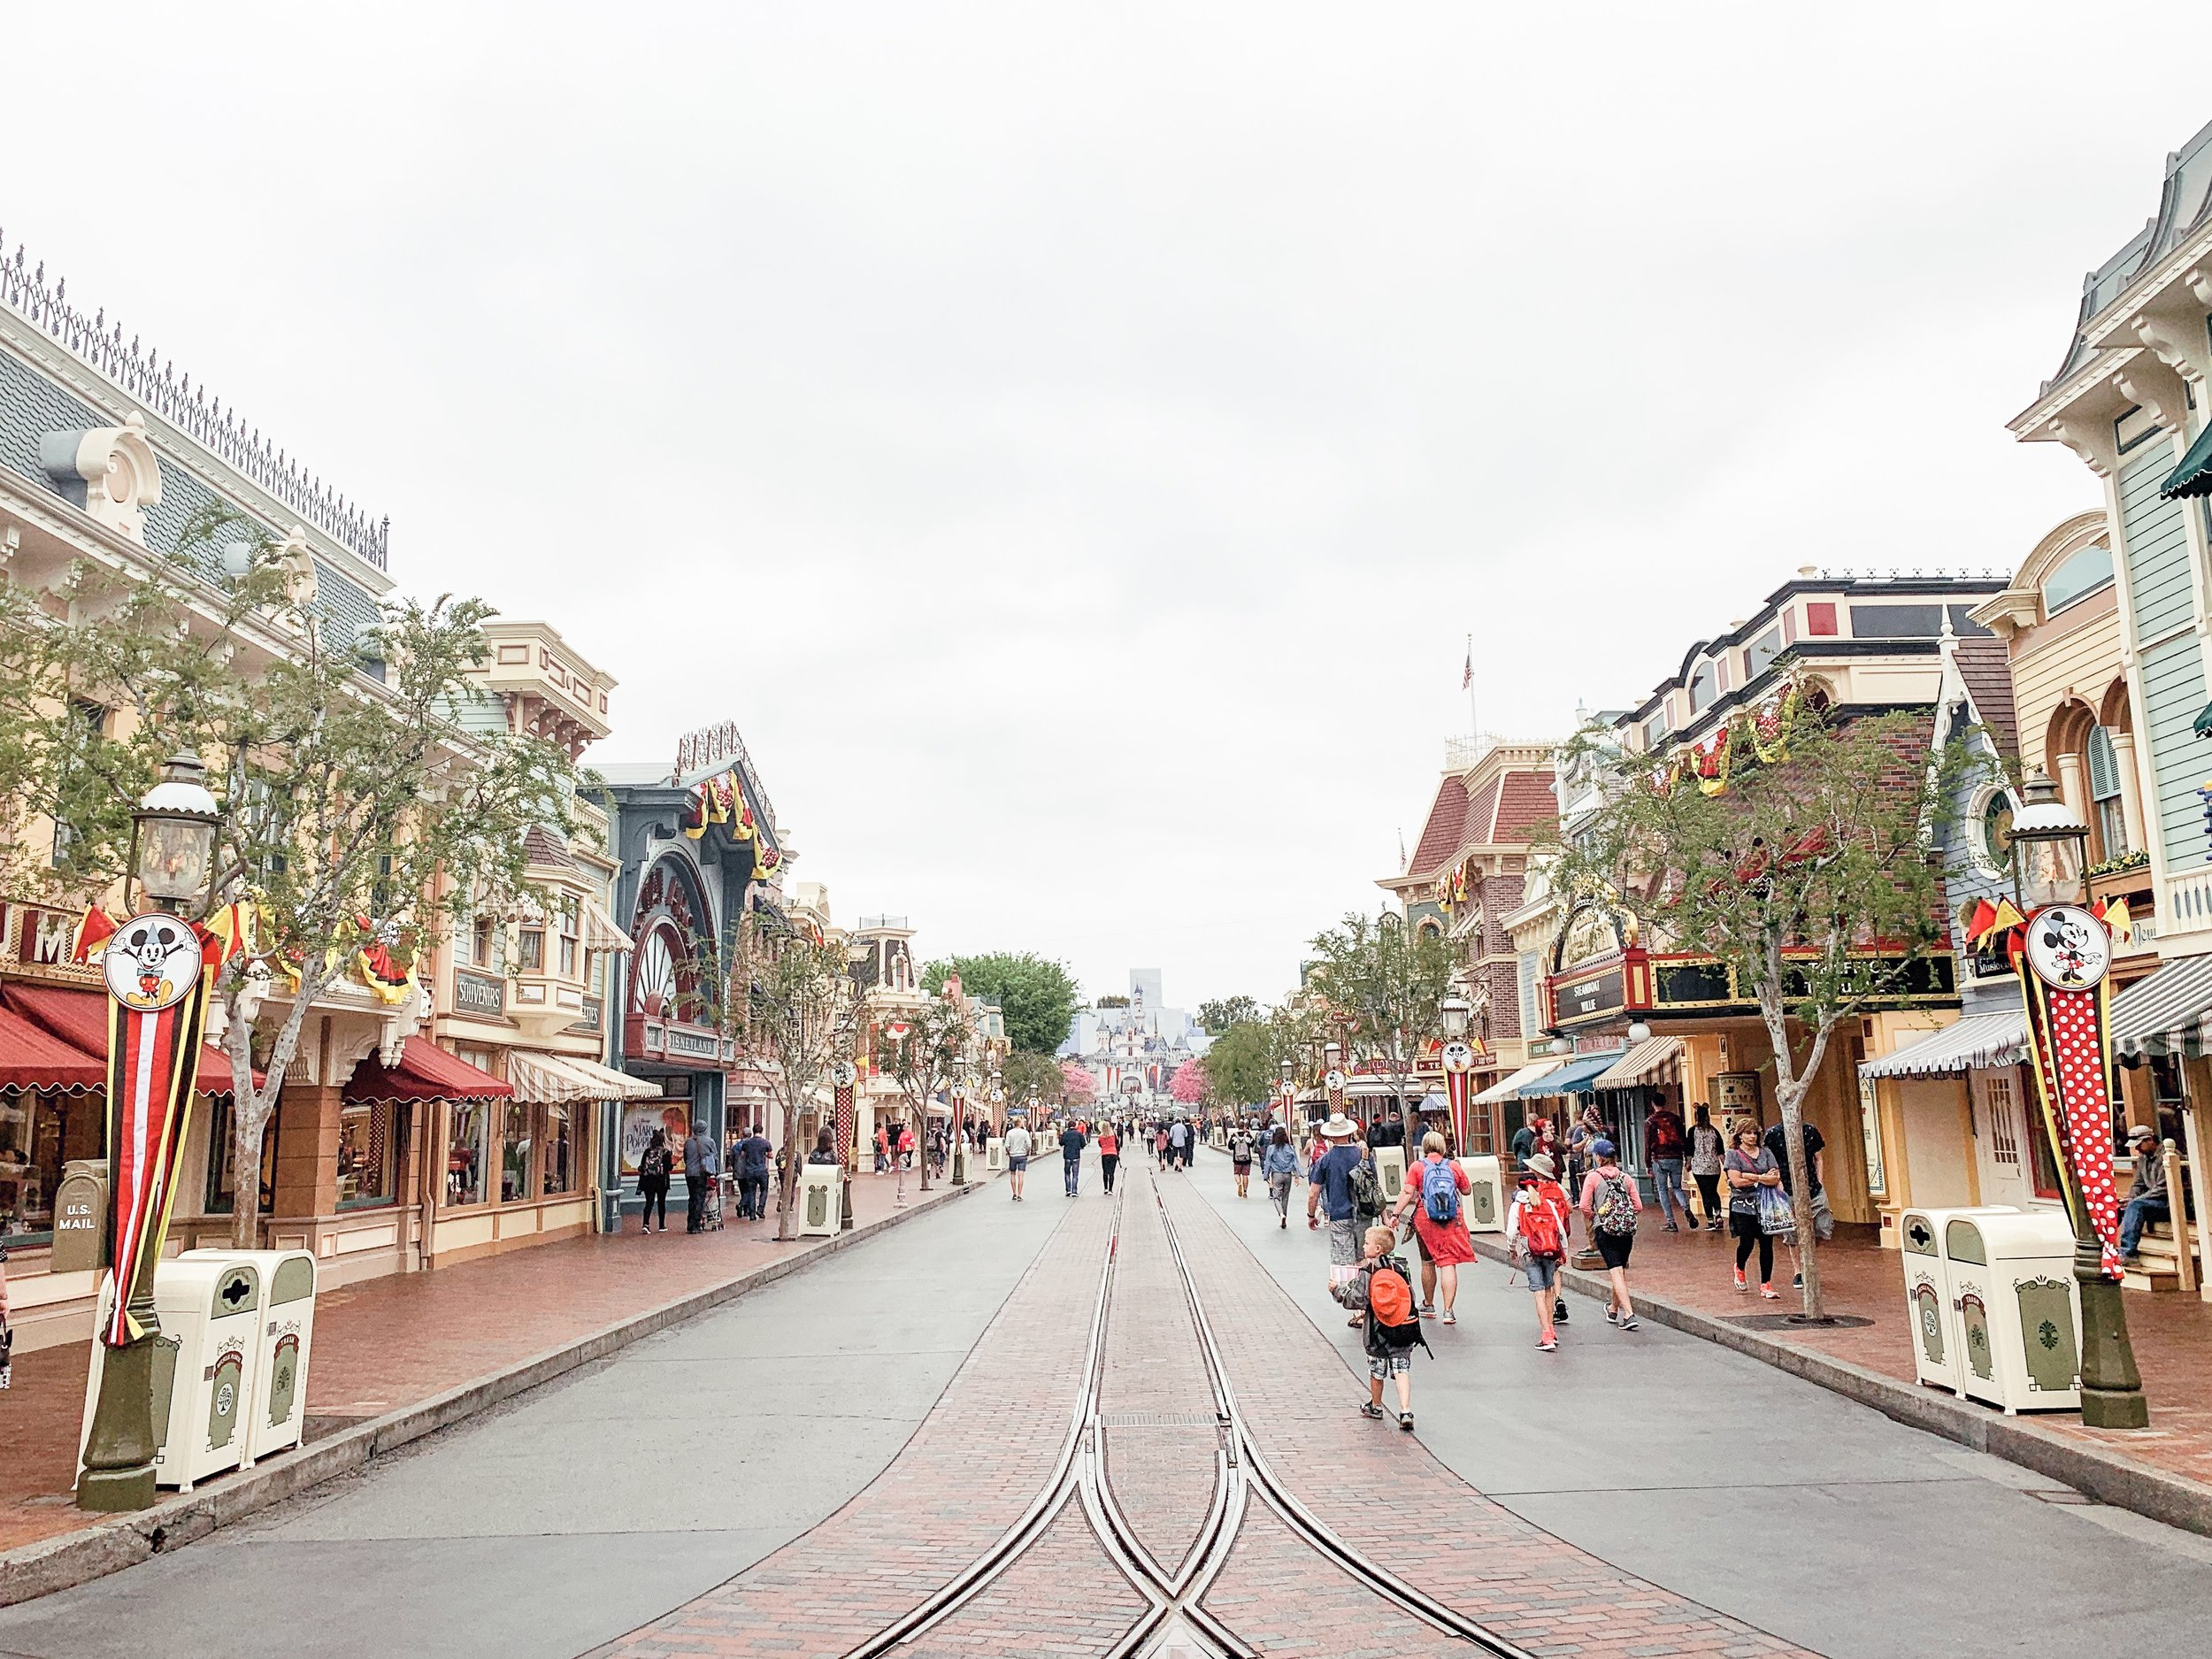 Main Street in Disneyland